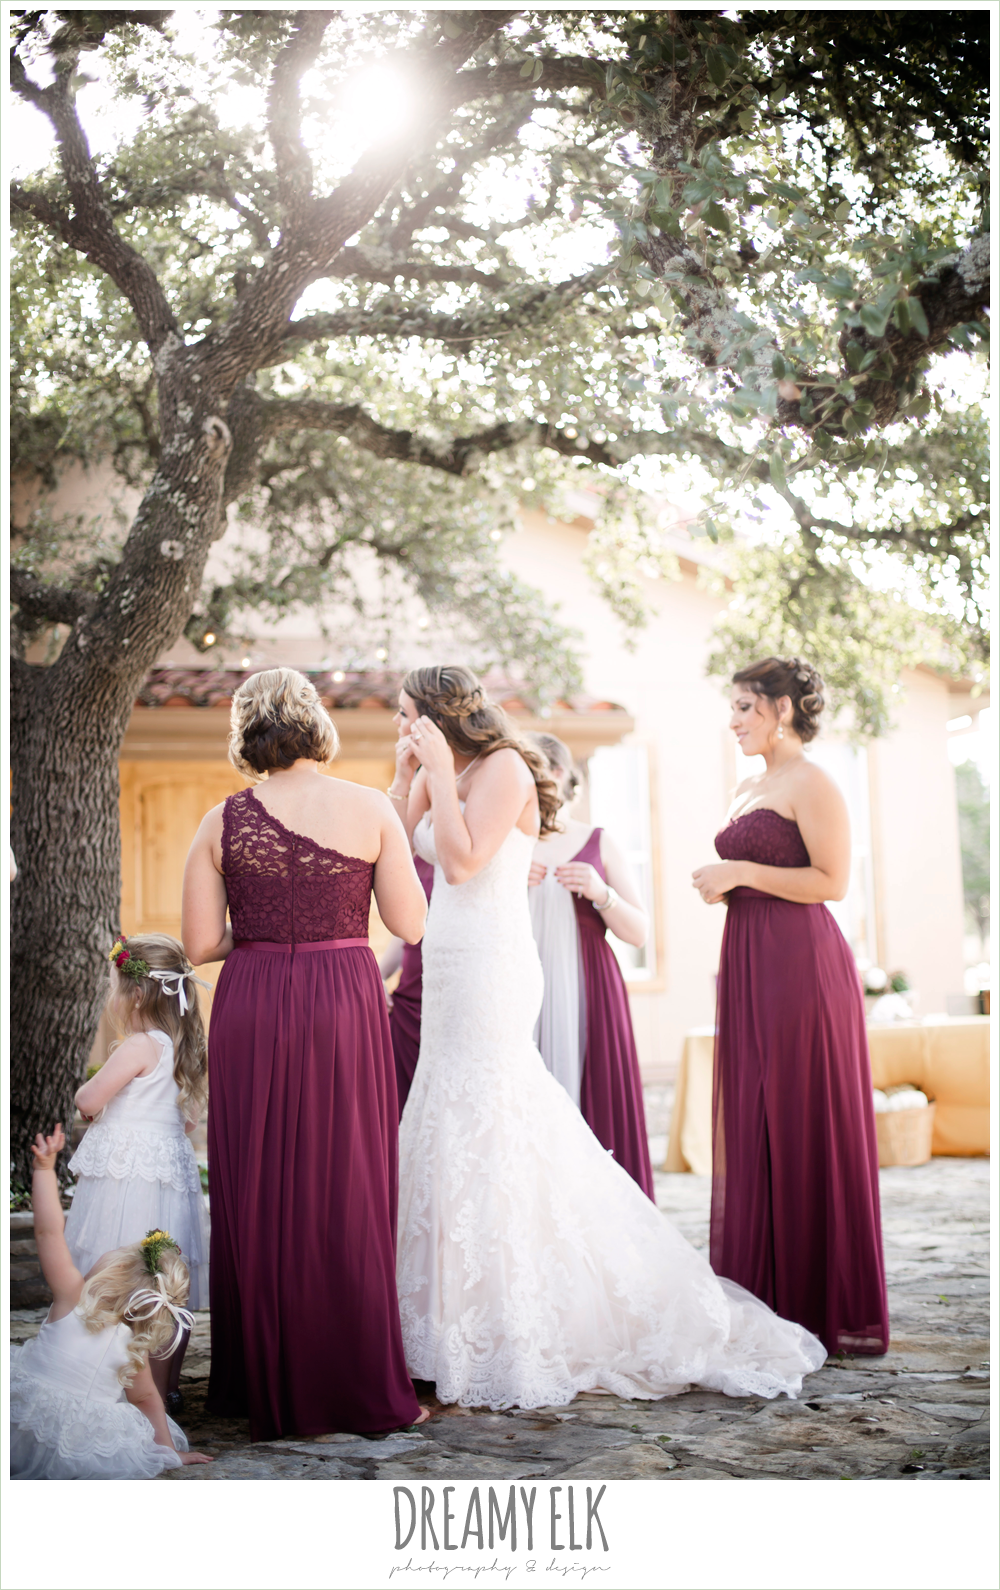 mix and match maroon long chiffon bridesmaid dresses, david's bridal, ventura's bridal fashions, sweetheart lace strapless fit and flare wedding dress, bride getting dressed, maroon and gold fall wedding photo, la hacienda, dripping springs, texas {dreamy elk photography and design}